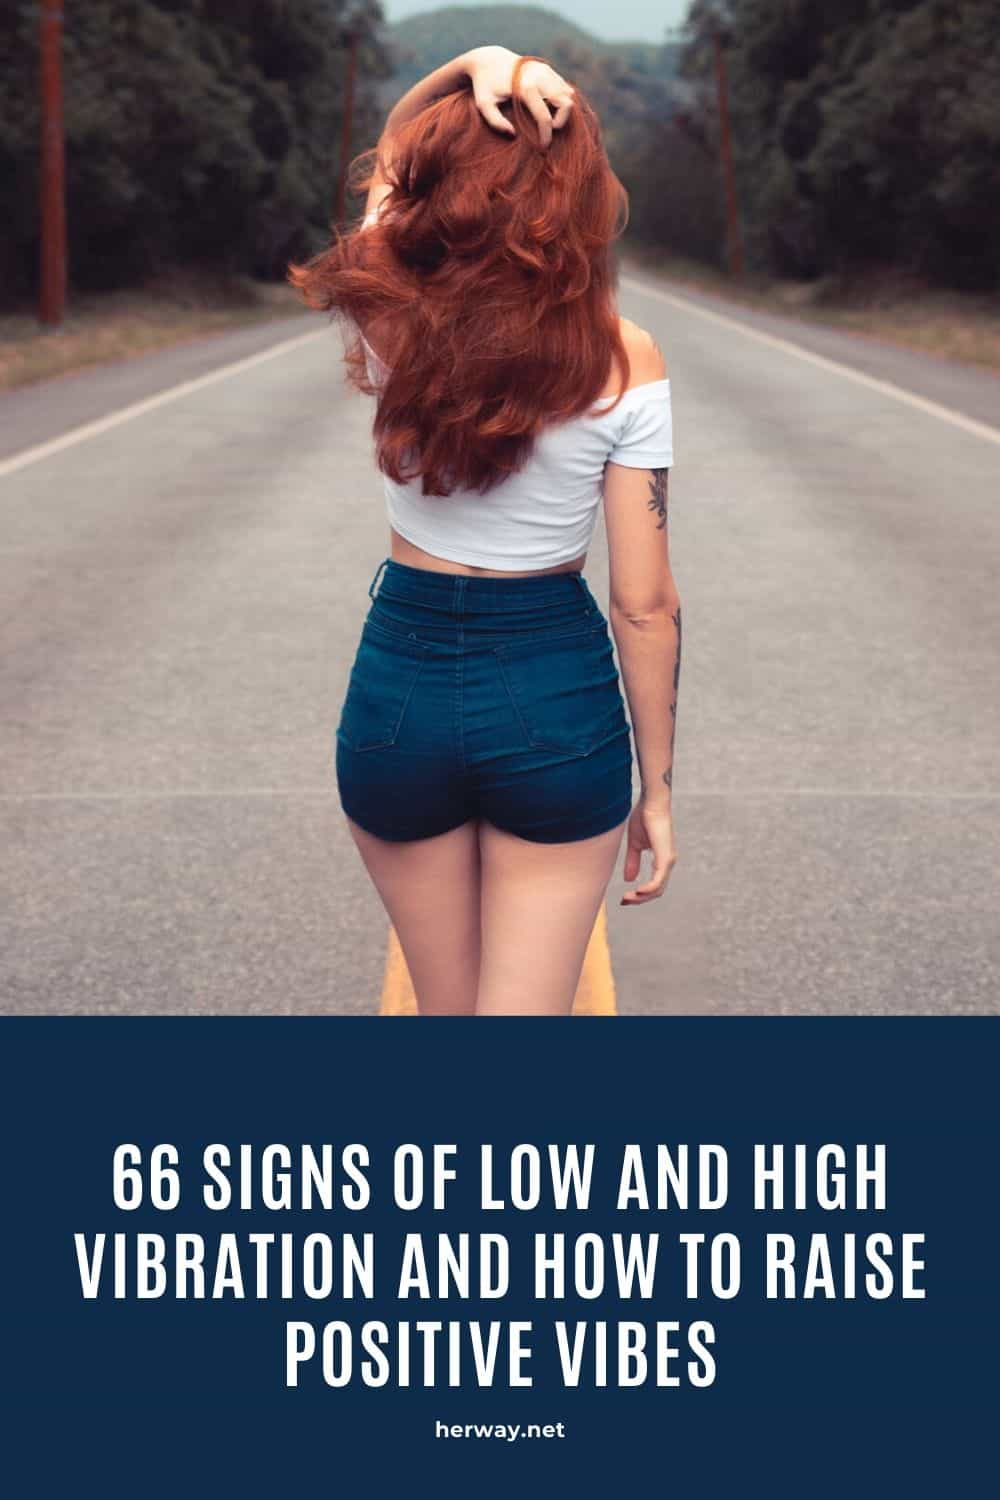 66 Signs Of Low And High Vibration And How To Raise Positive Vibes